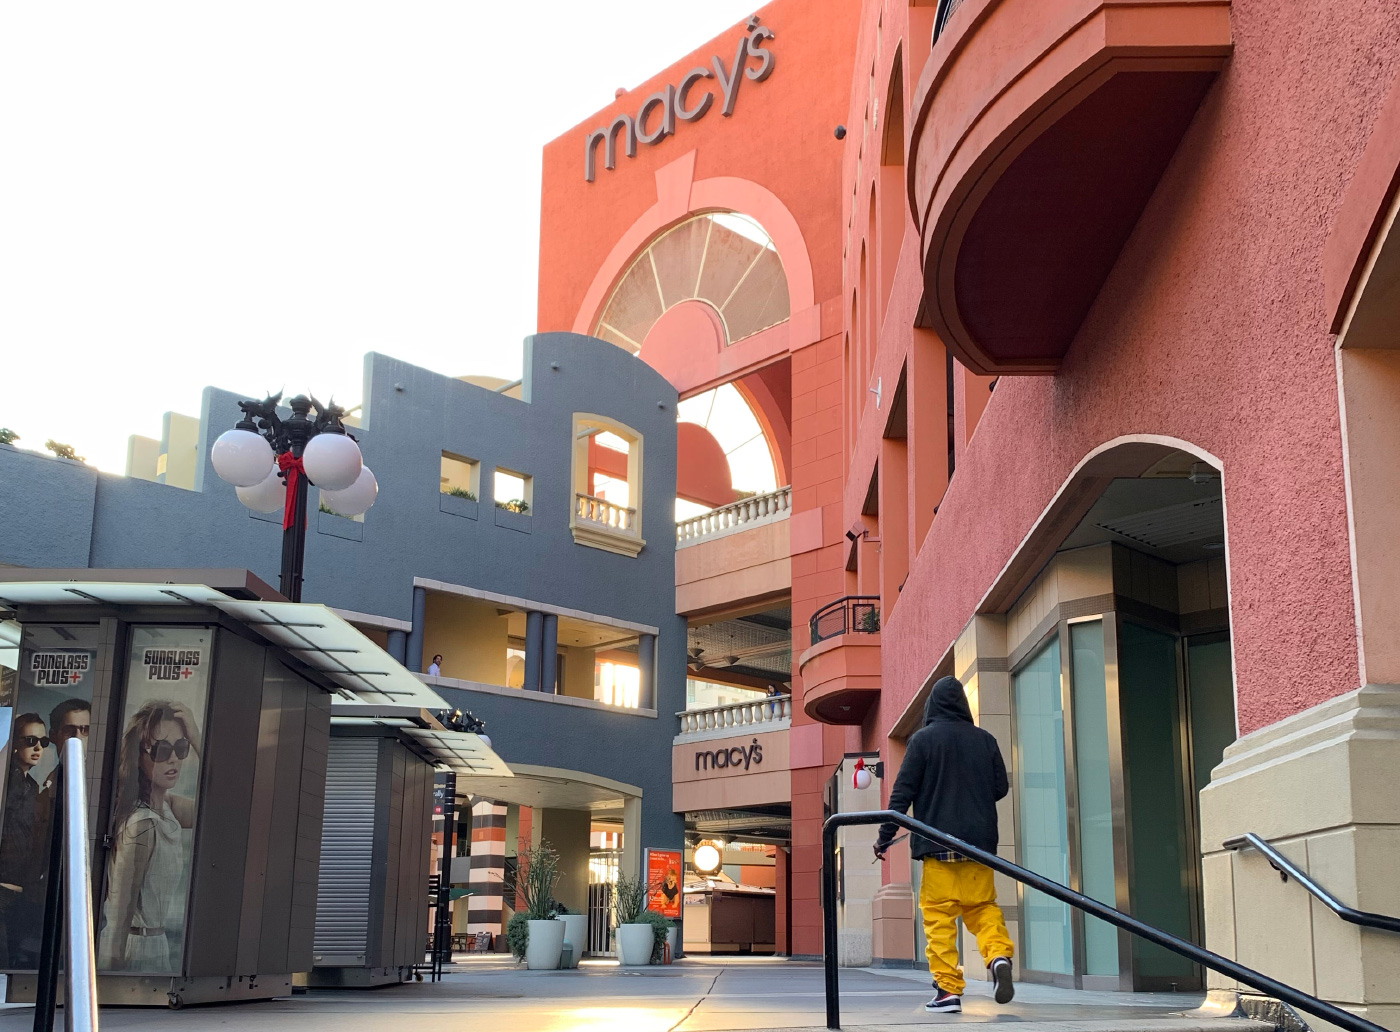 Ground-level view of a postmodern mall complex at horton plaza